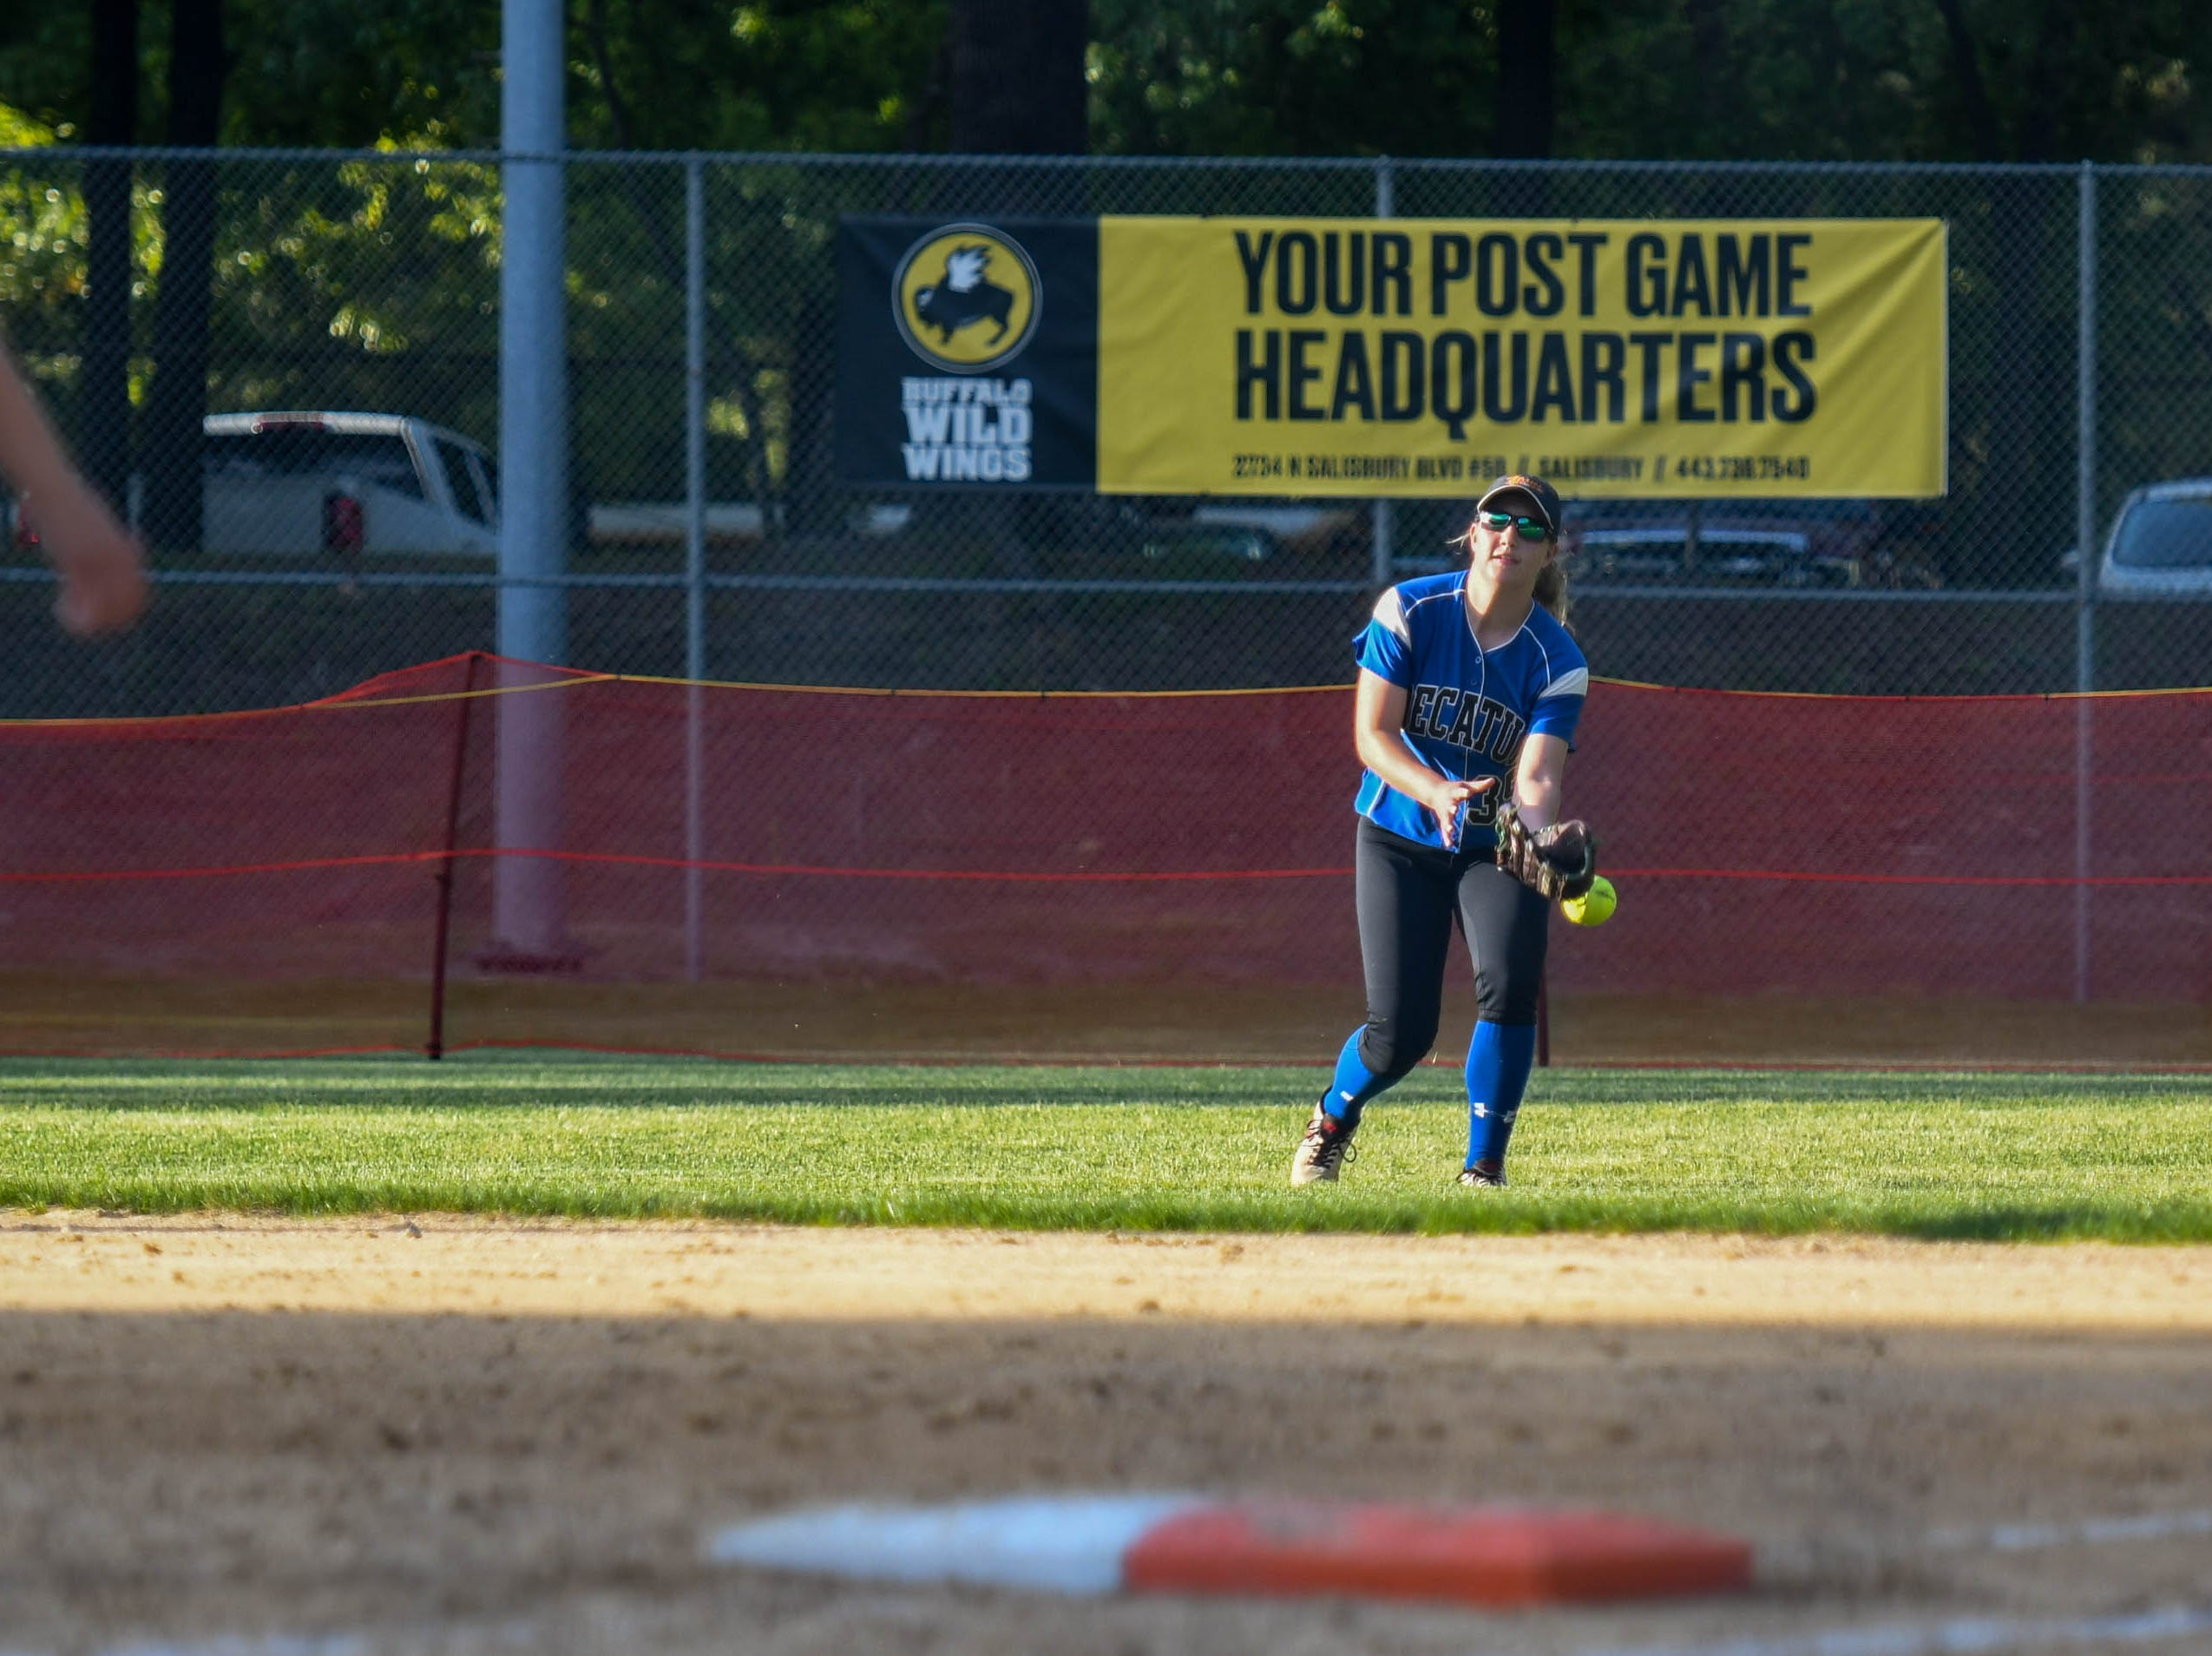 Decatur's Alexa Eisemann (35) fields a ball against Colonel Richardson in the Bayside Softball Championship game on Wednesday, May 8, 2019. Decatur prevailed with a score of 4 to 1.